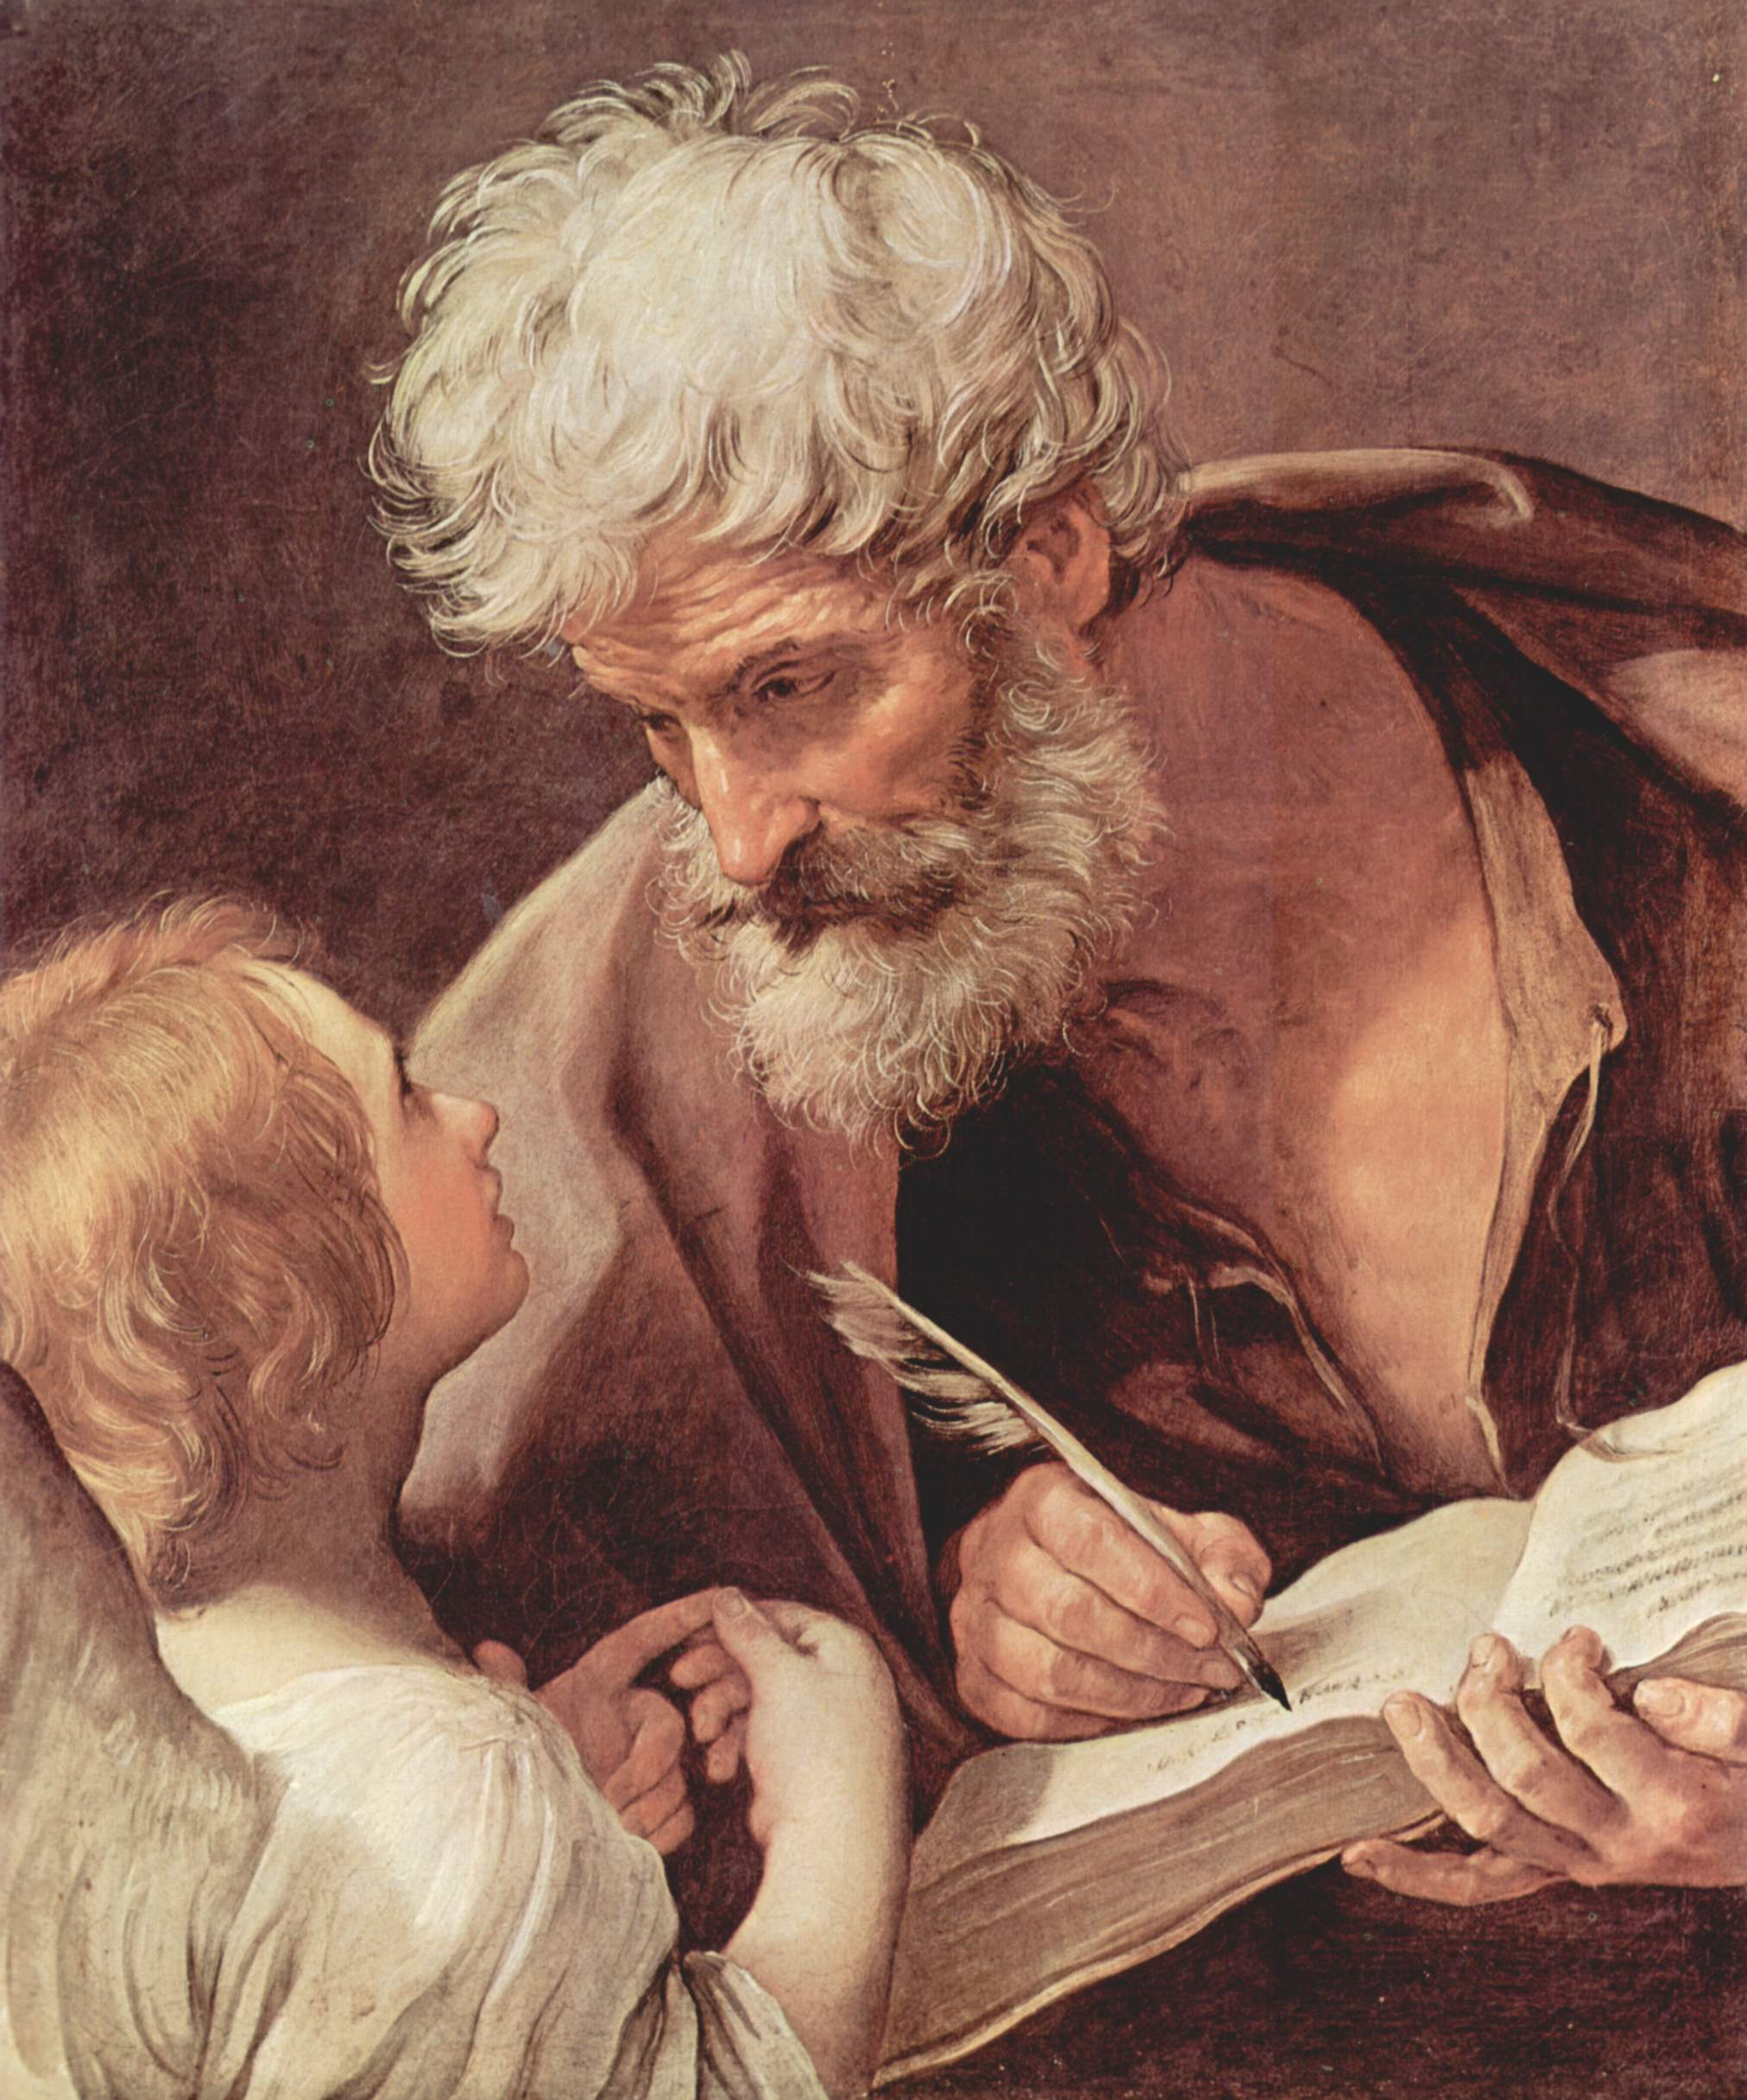 File:Guido Reni 043.jpg - Wikipedia